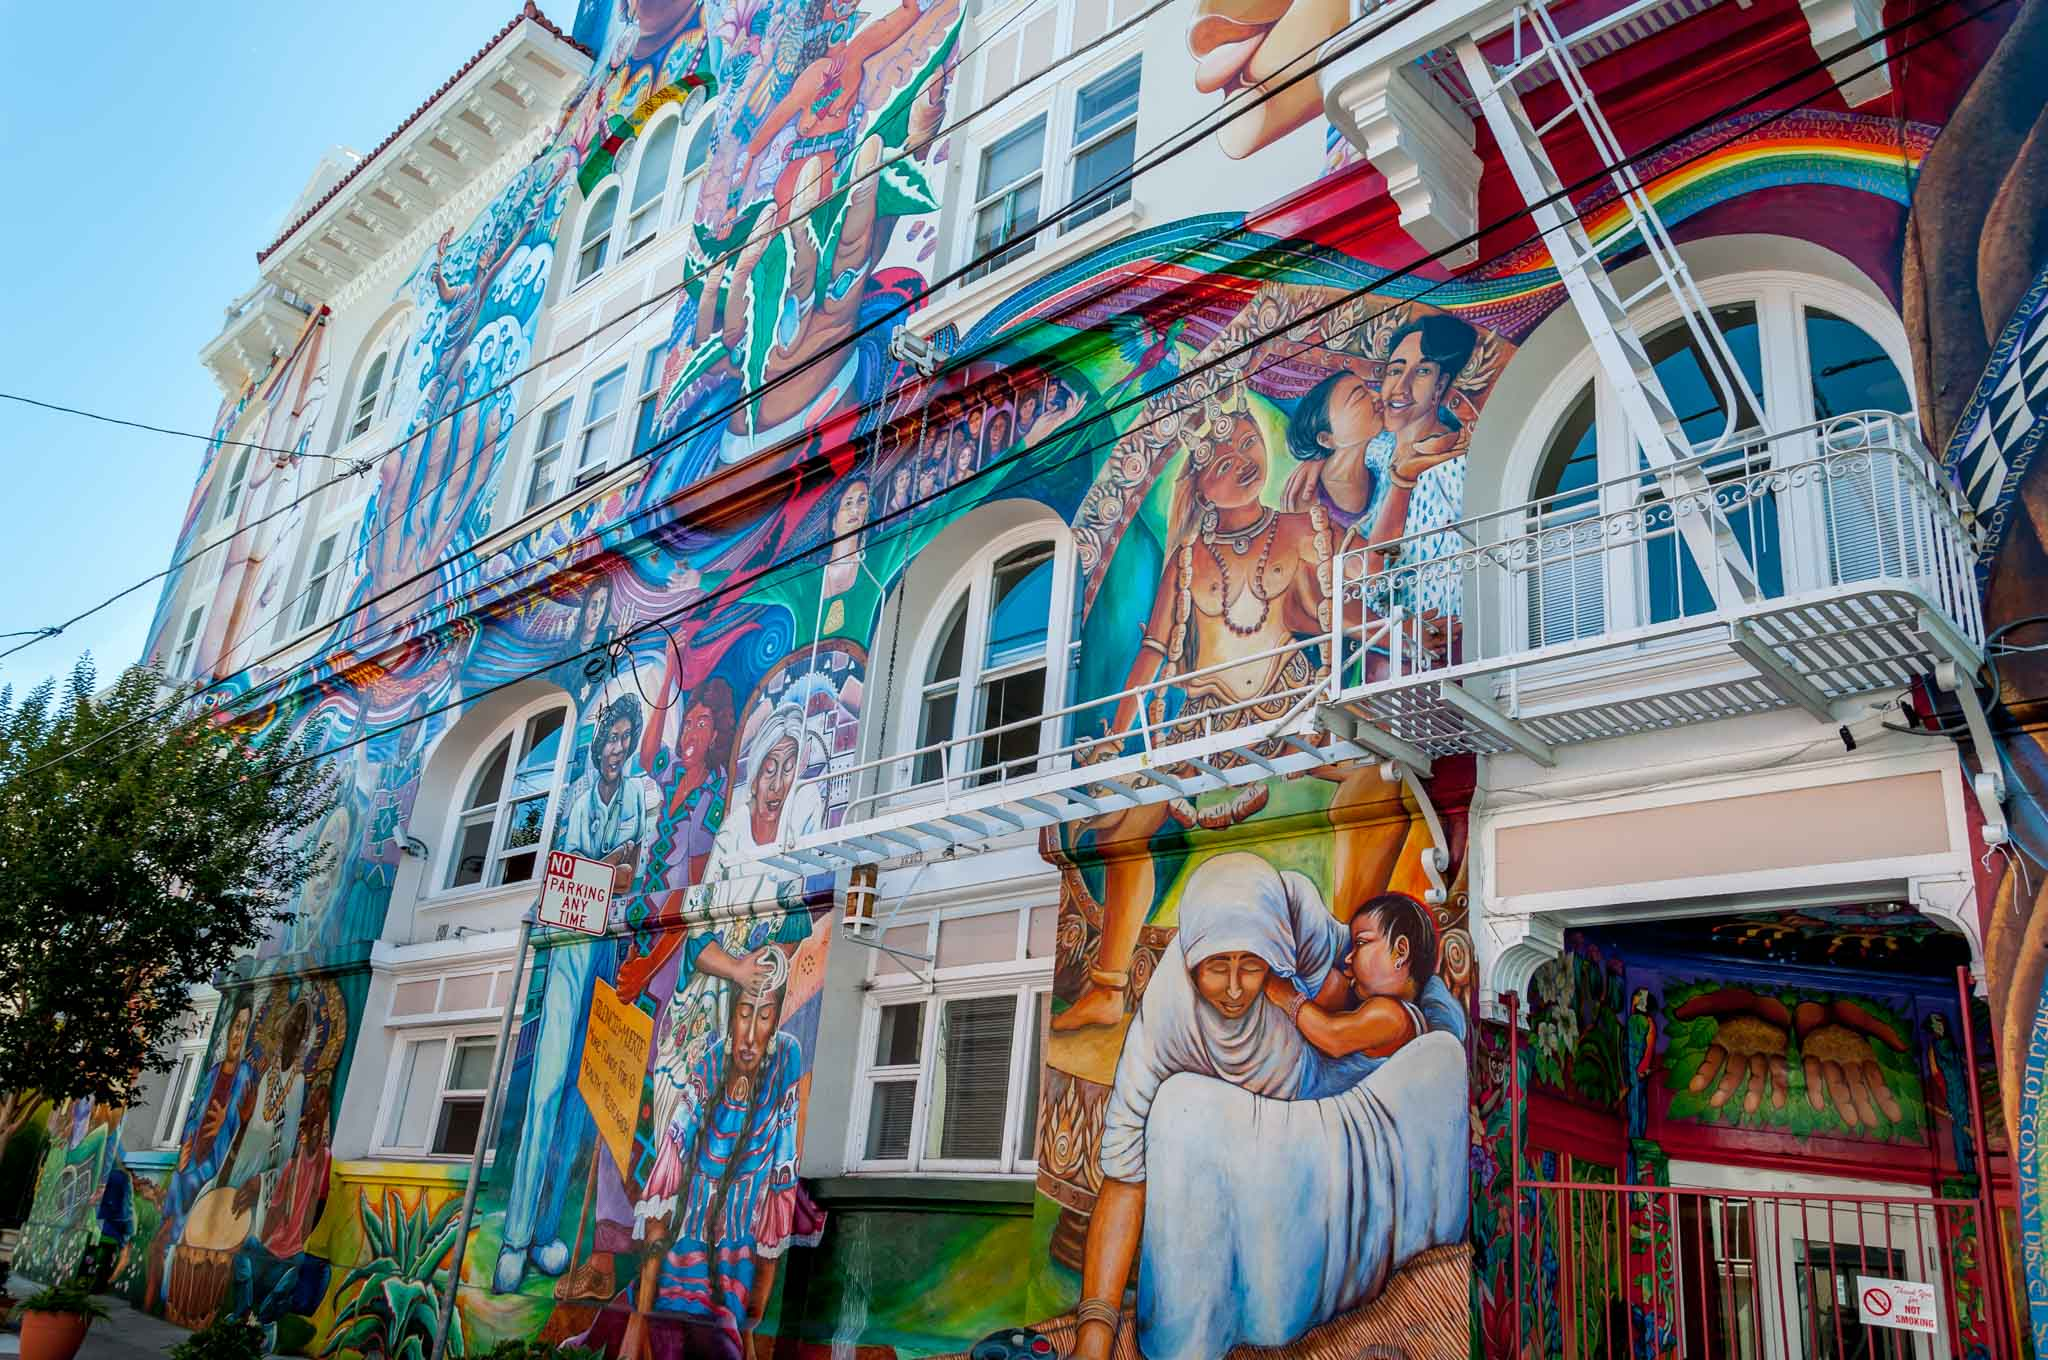 The Women's Building in San Francisco Mission District covered with murals